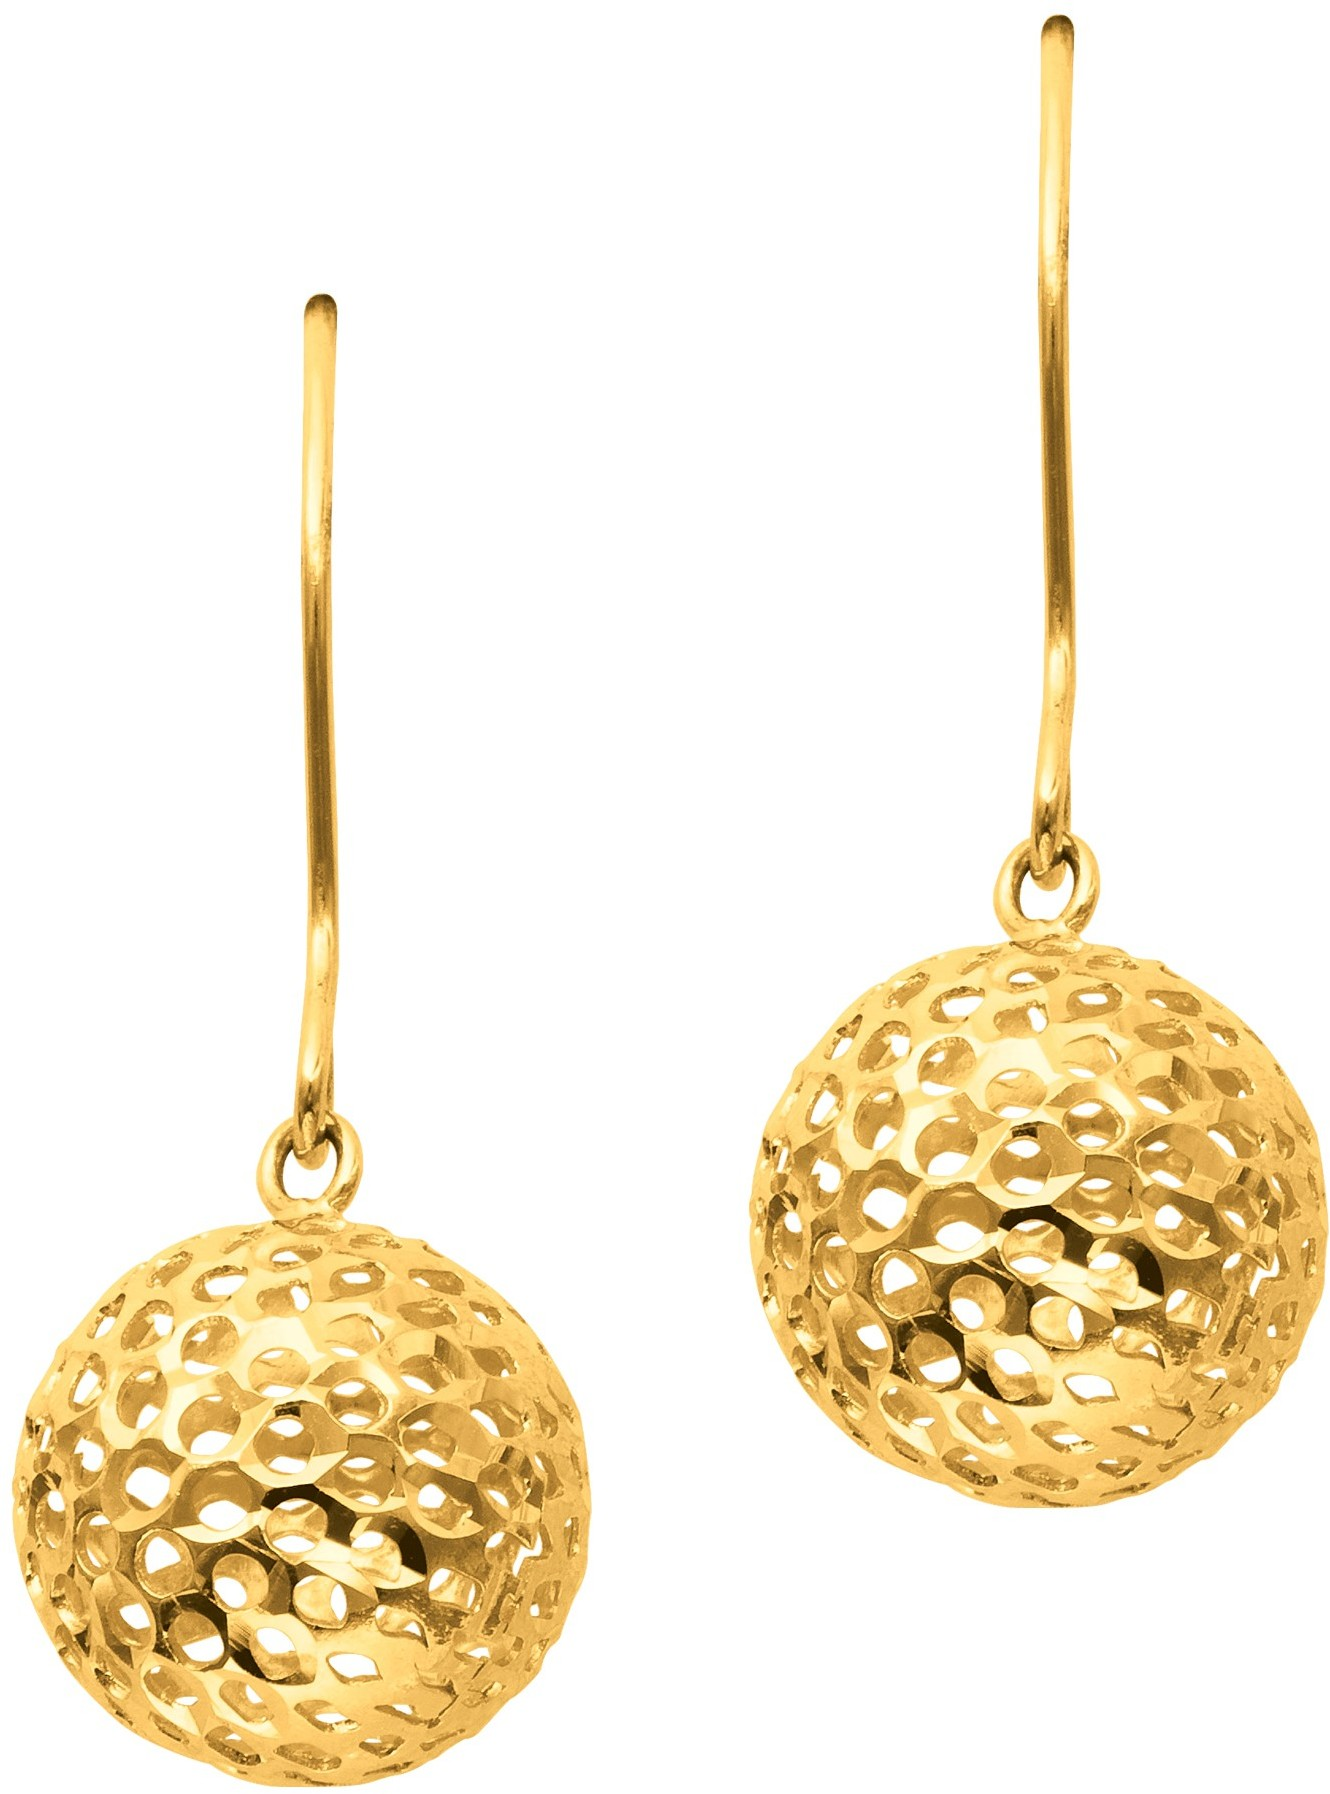 14K Yellow Gold Textured Polished Large Round Mesh Ball Fashion Dangle Earrings